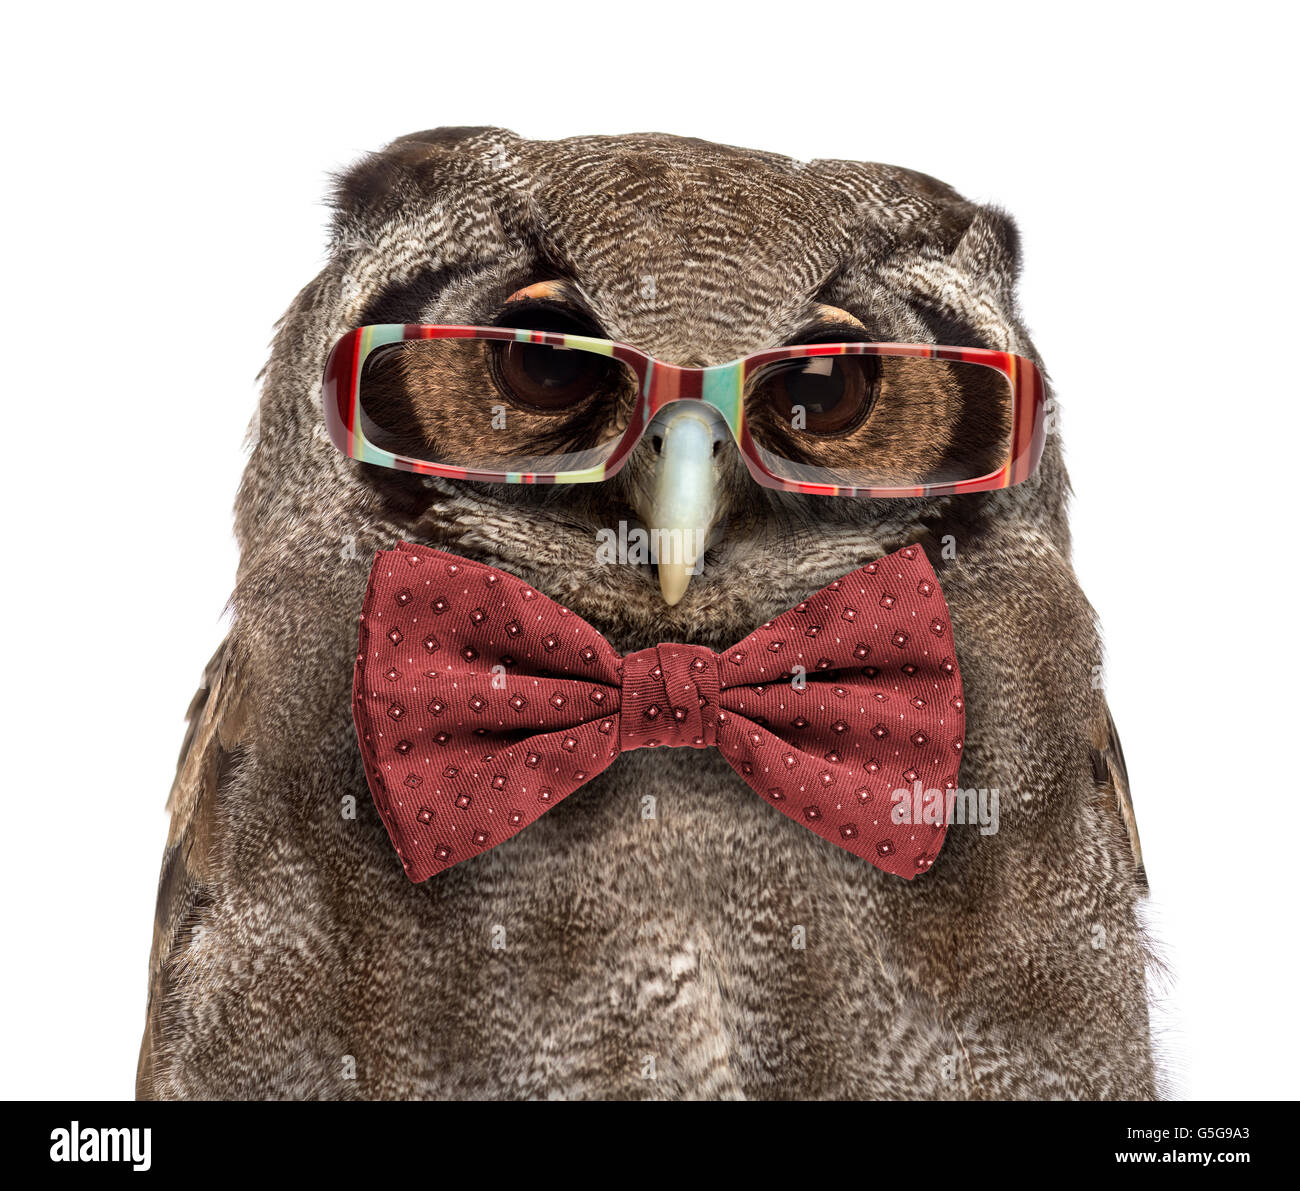 Close-up of a Verreaux's eagle-owl - Bubo lacteus (3 years old) wearing glasses and a bow tie in front of a - Stock Image